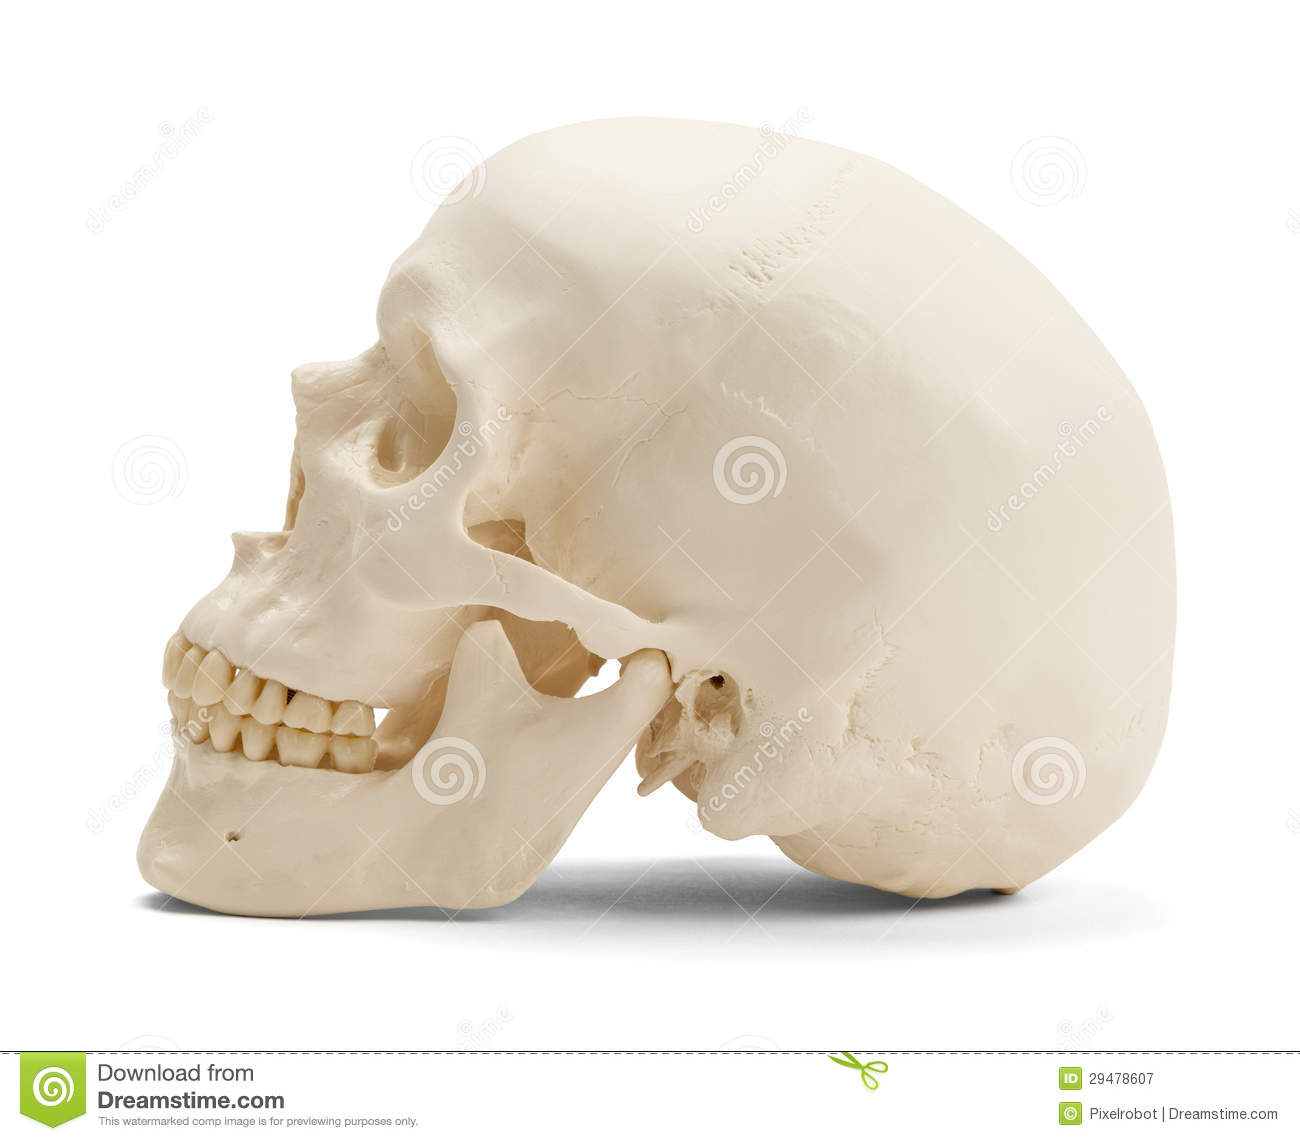 Human Skull Side View Royalty Free Stock Photography - Image: 29478607